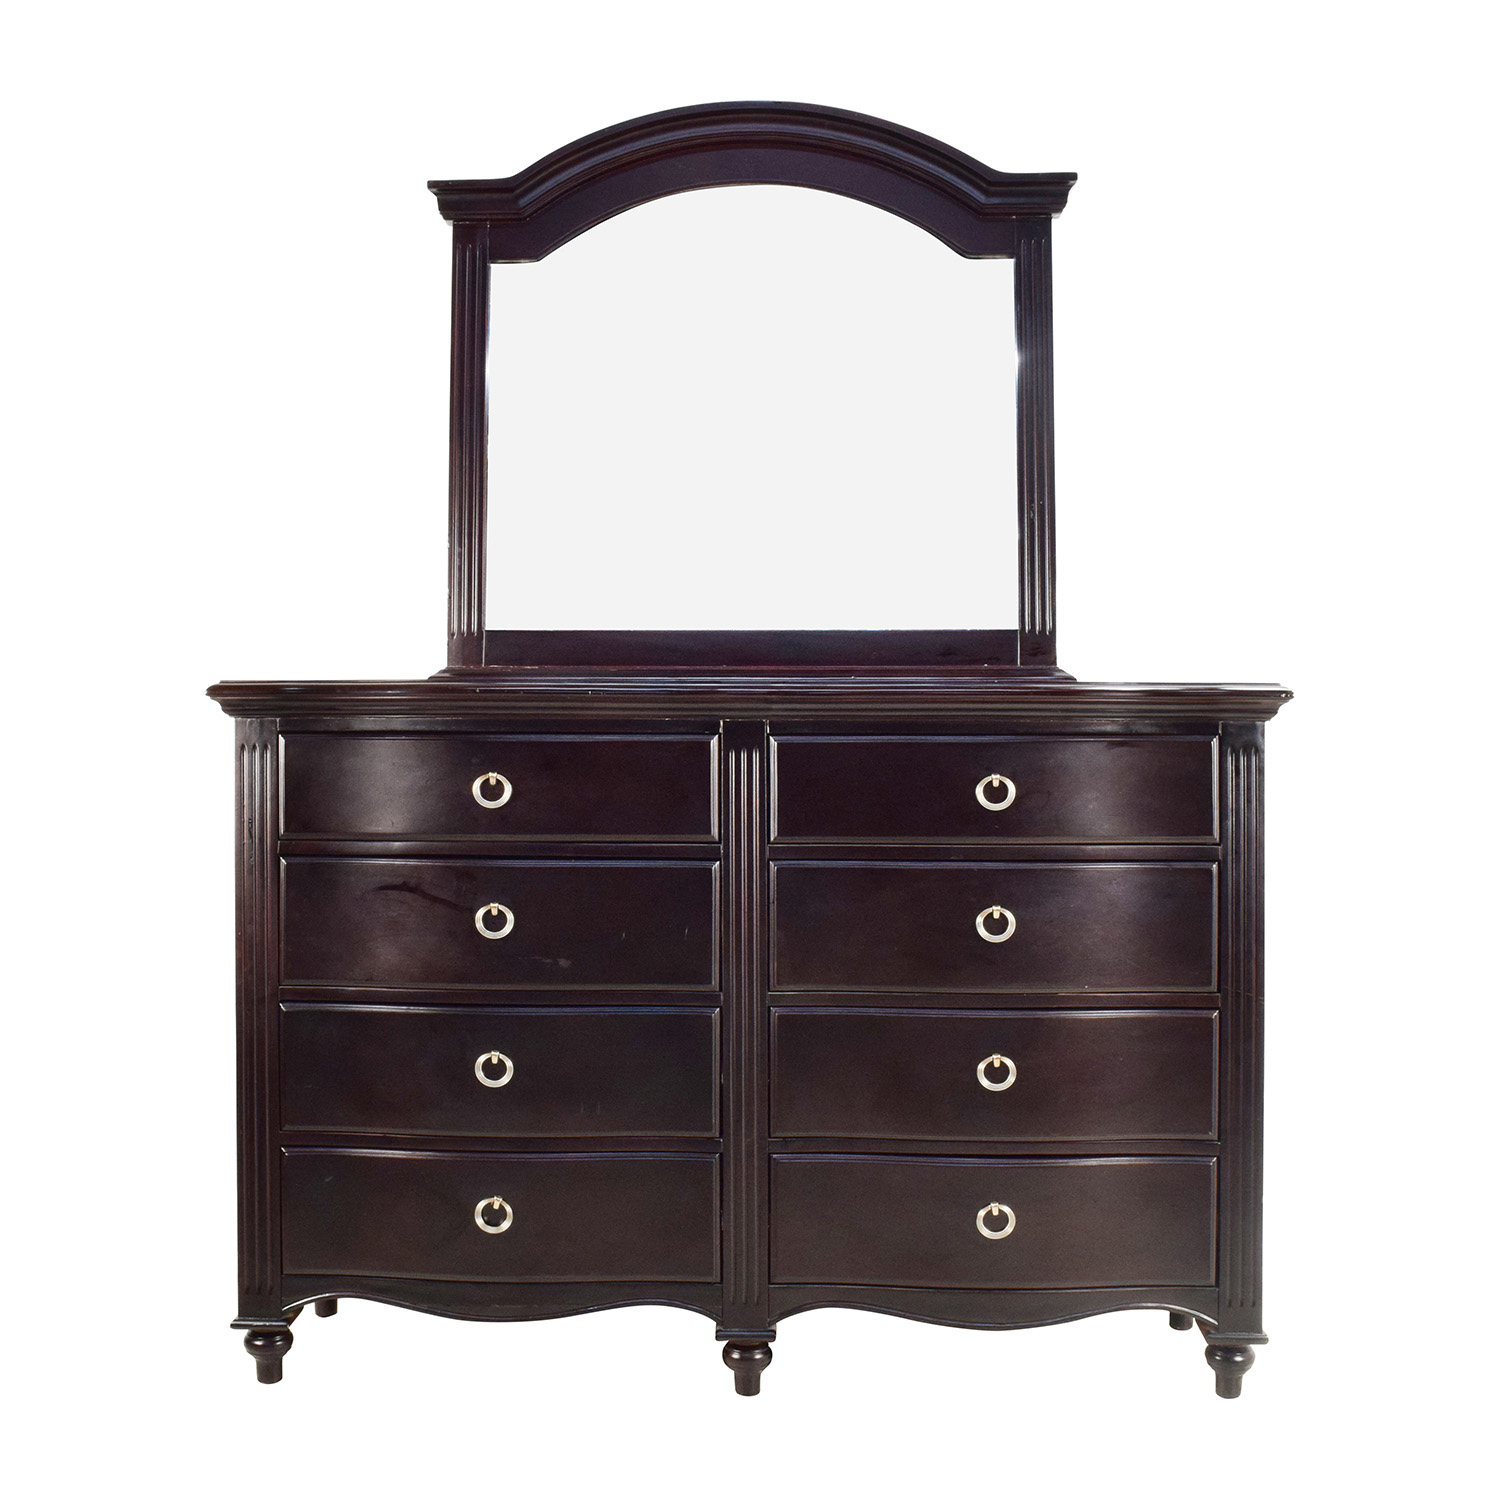 Mahogany 10-Drawer Dresser / Storage